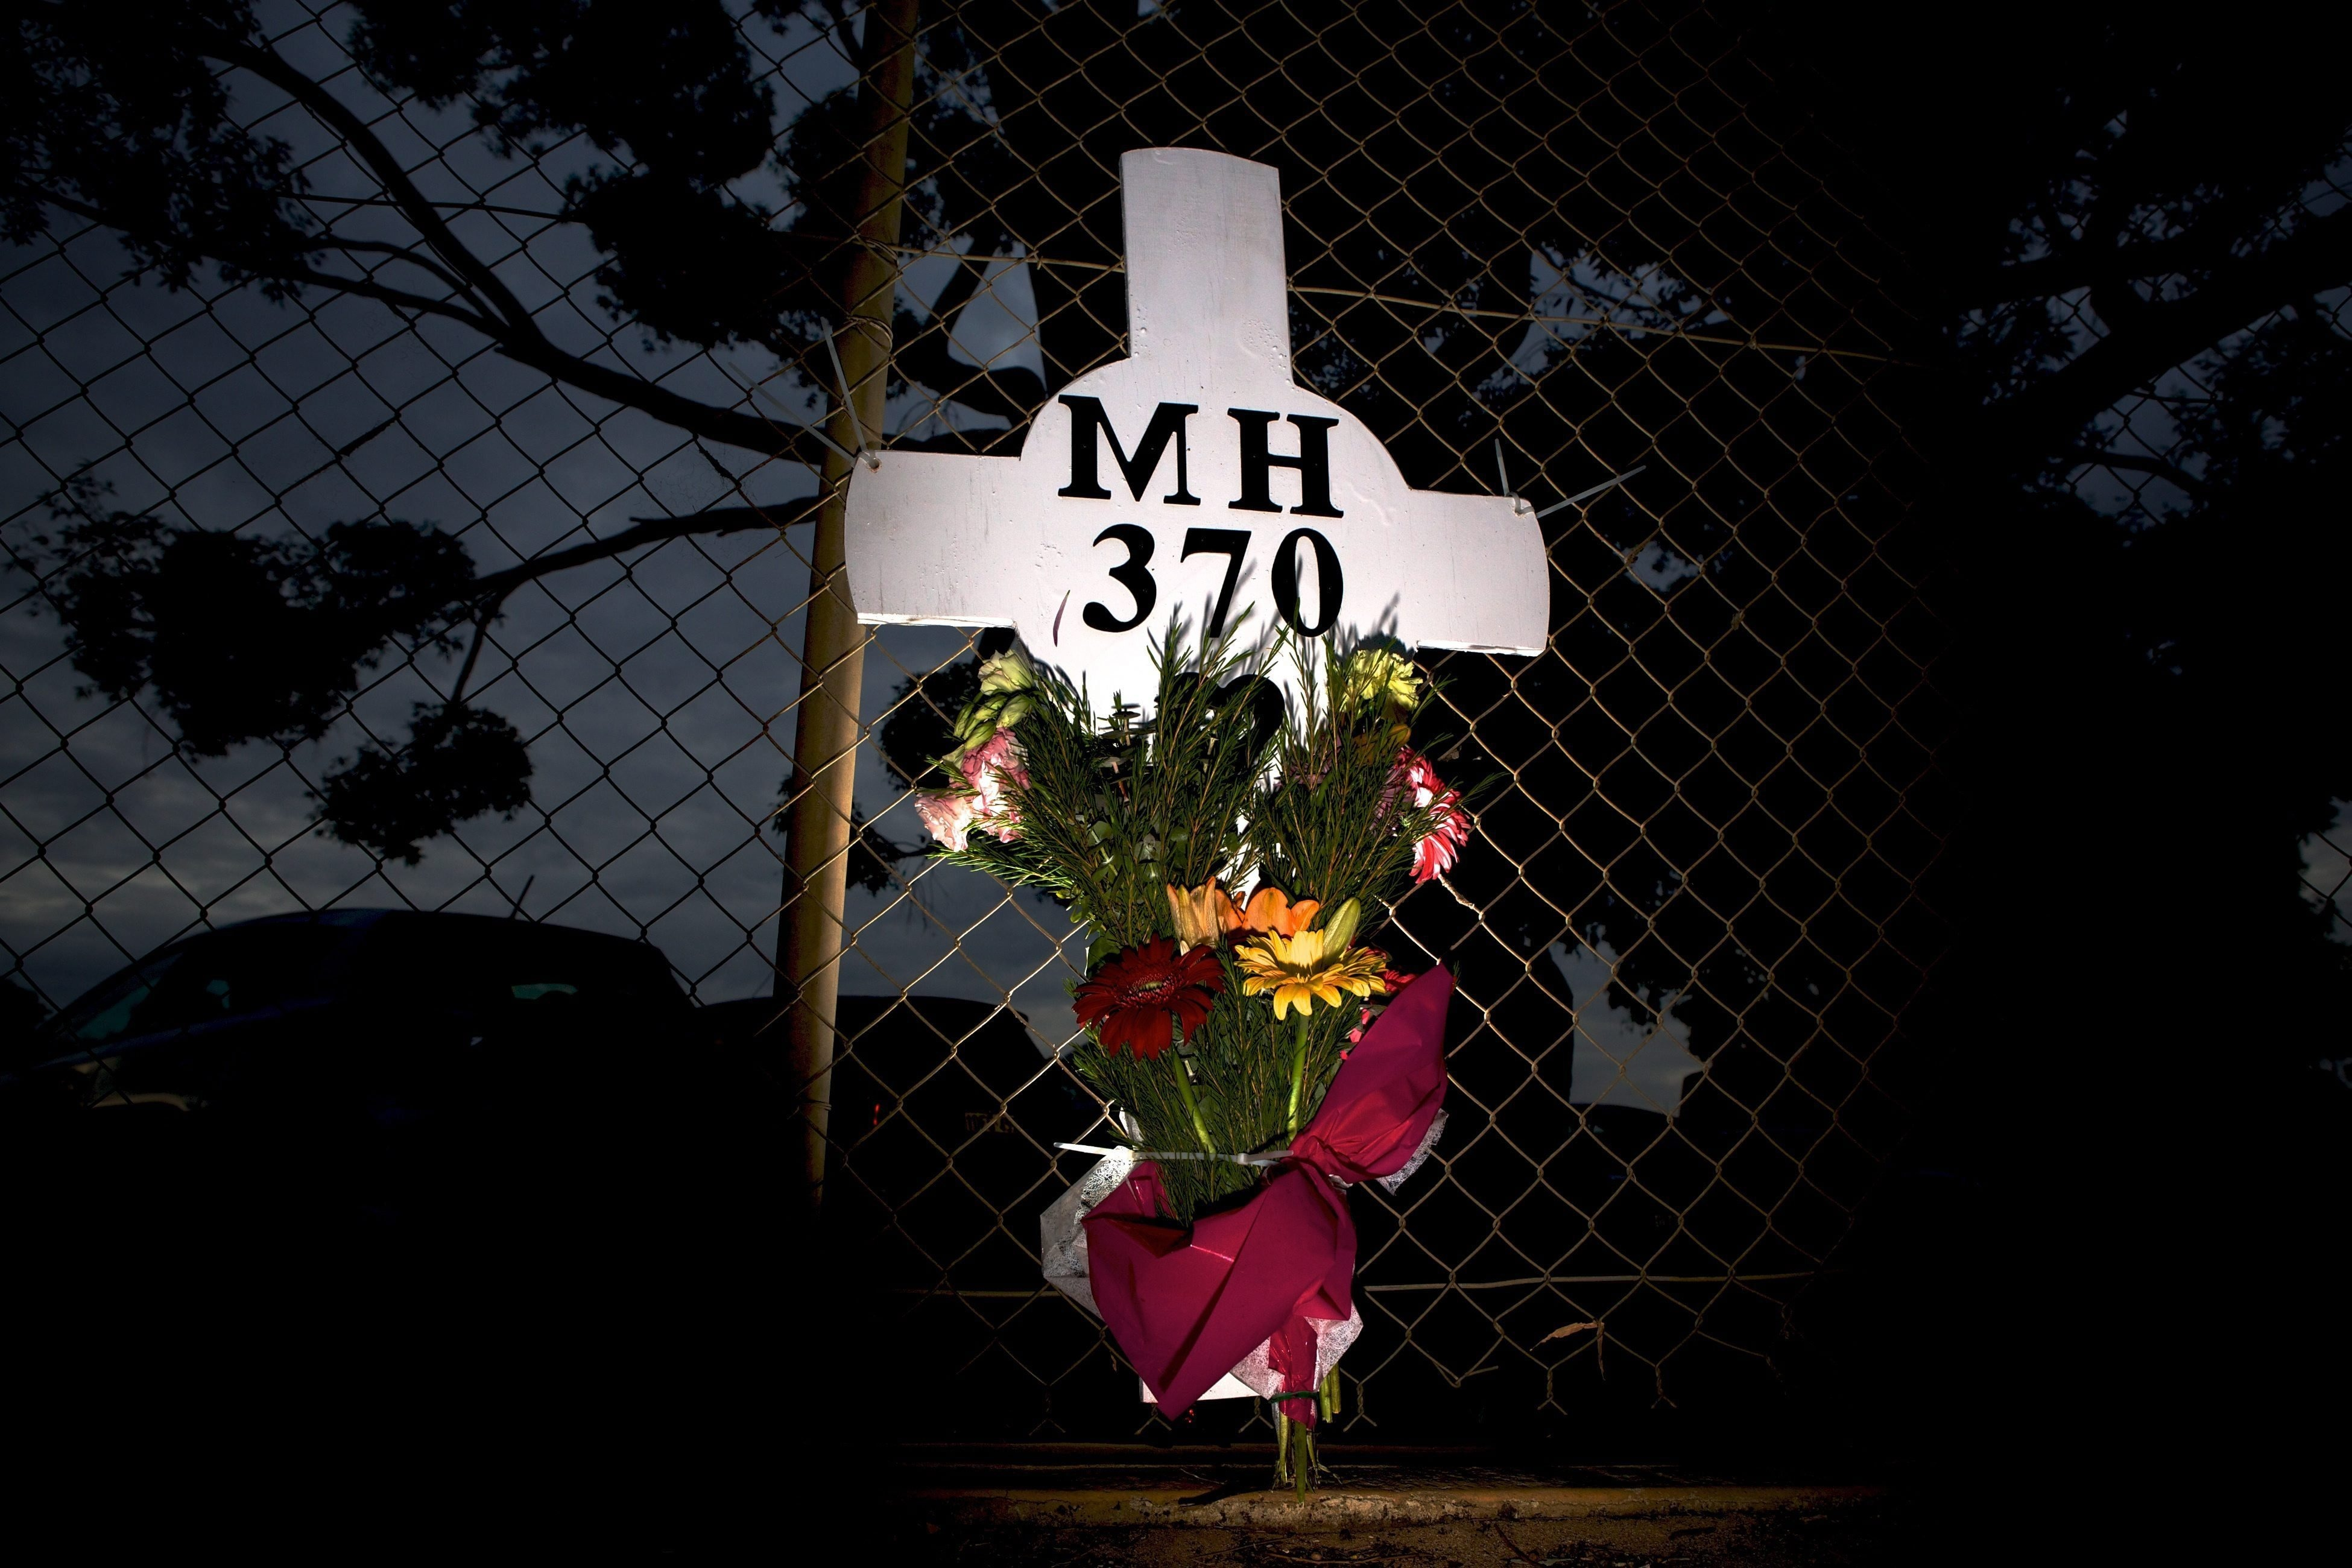 A memorial for MH370's victims outside an air force base in Perth, Australia